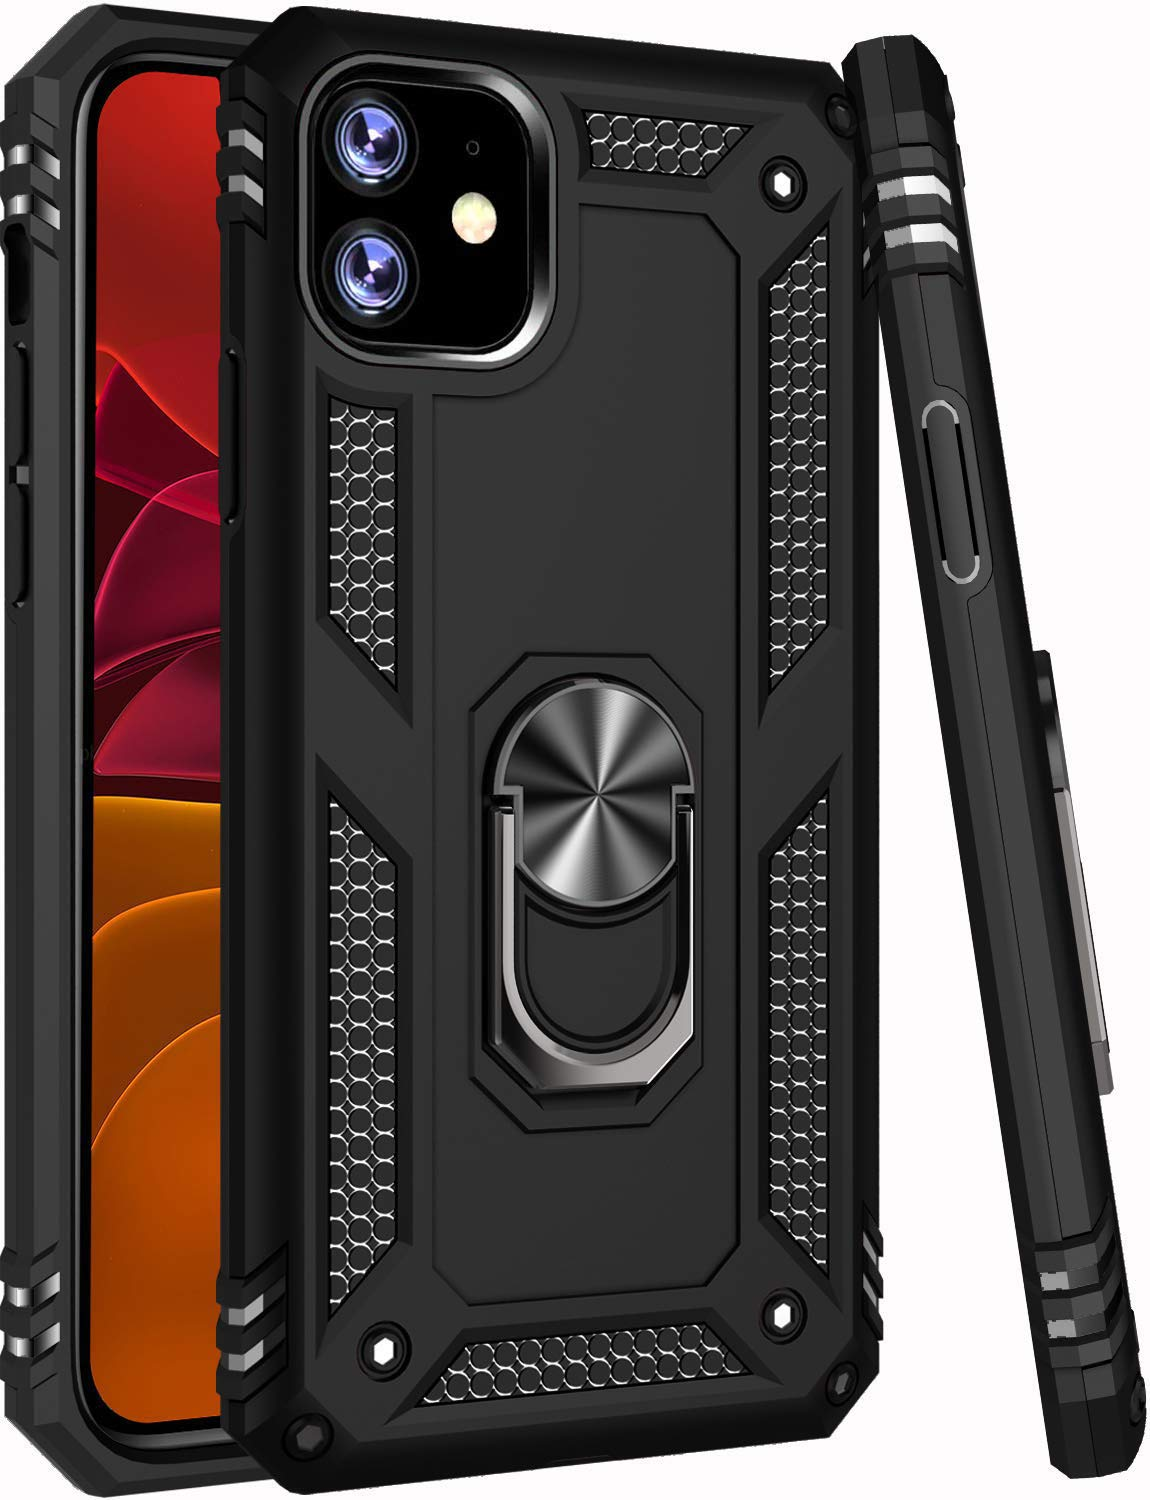 ZADORN iPhone 11 Case,15ft Drop Tested, Military Grade Heavy Duty Rugged Armor Cover Hard PC and Soft TPU Protective Phone Case for iPhone 11 6.1 inch 2019 Black